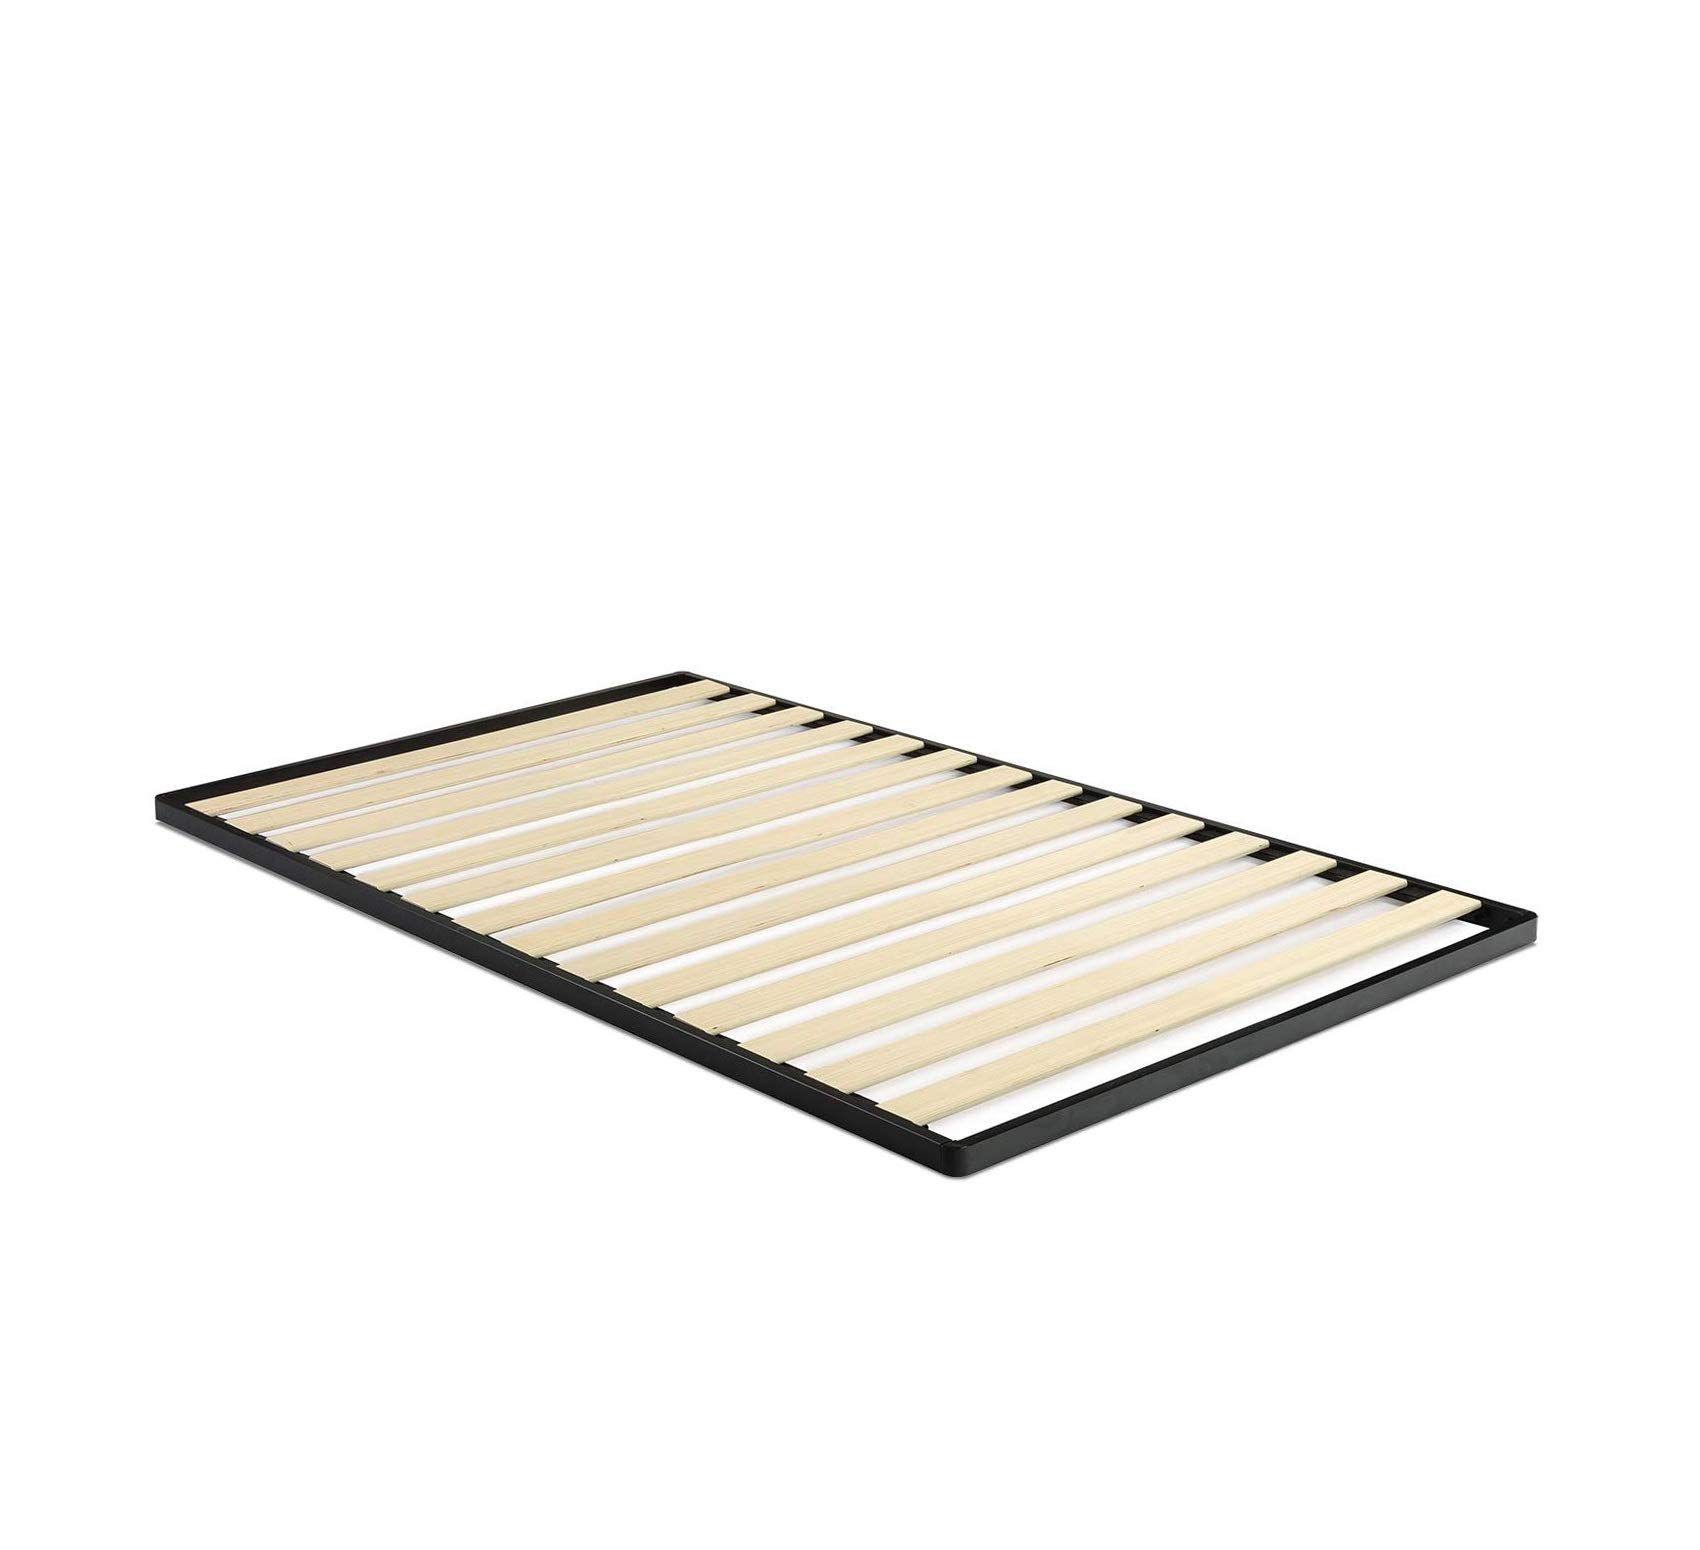 Easy Assembly Wood Slat 1.6 Inch Bunkie Board/Bed Slat Replacement, Queen Comfy Living Home Décor Furniture Heavy Duty by Wood & Style